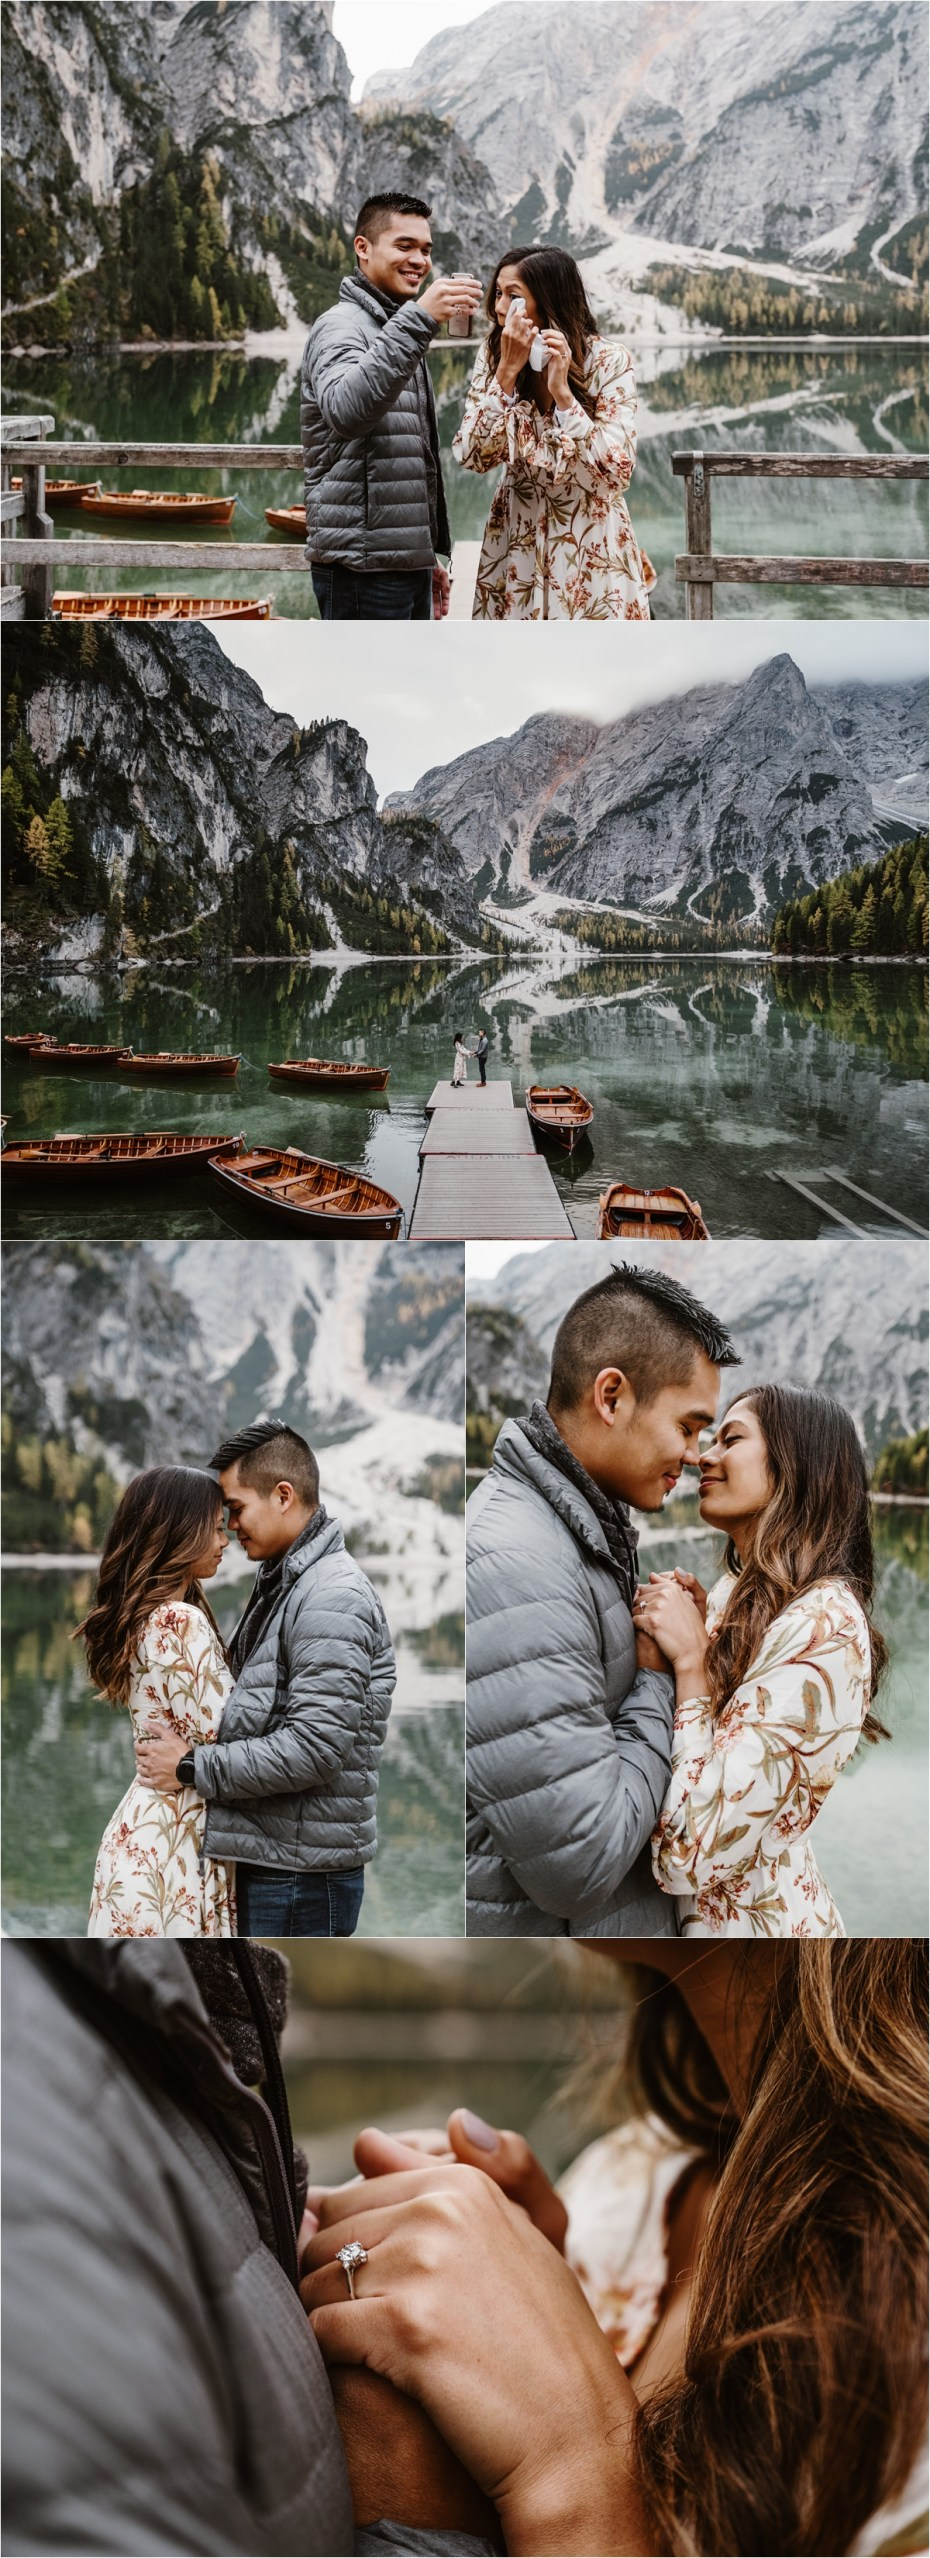 Secret proposal and engagement photos on Lago di Braies in the Italian Alps. Photos by Wild Connections Photography.